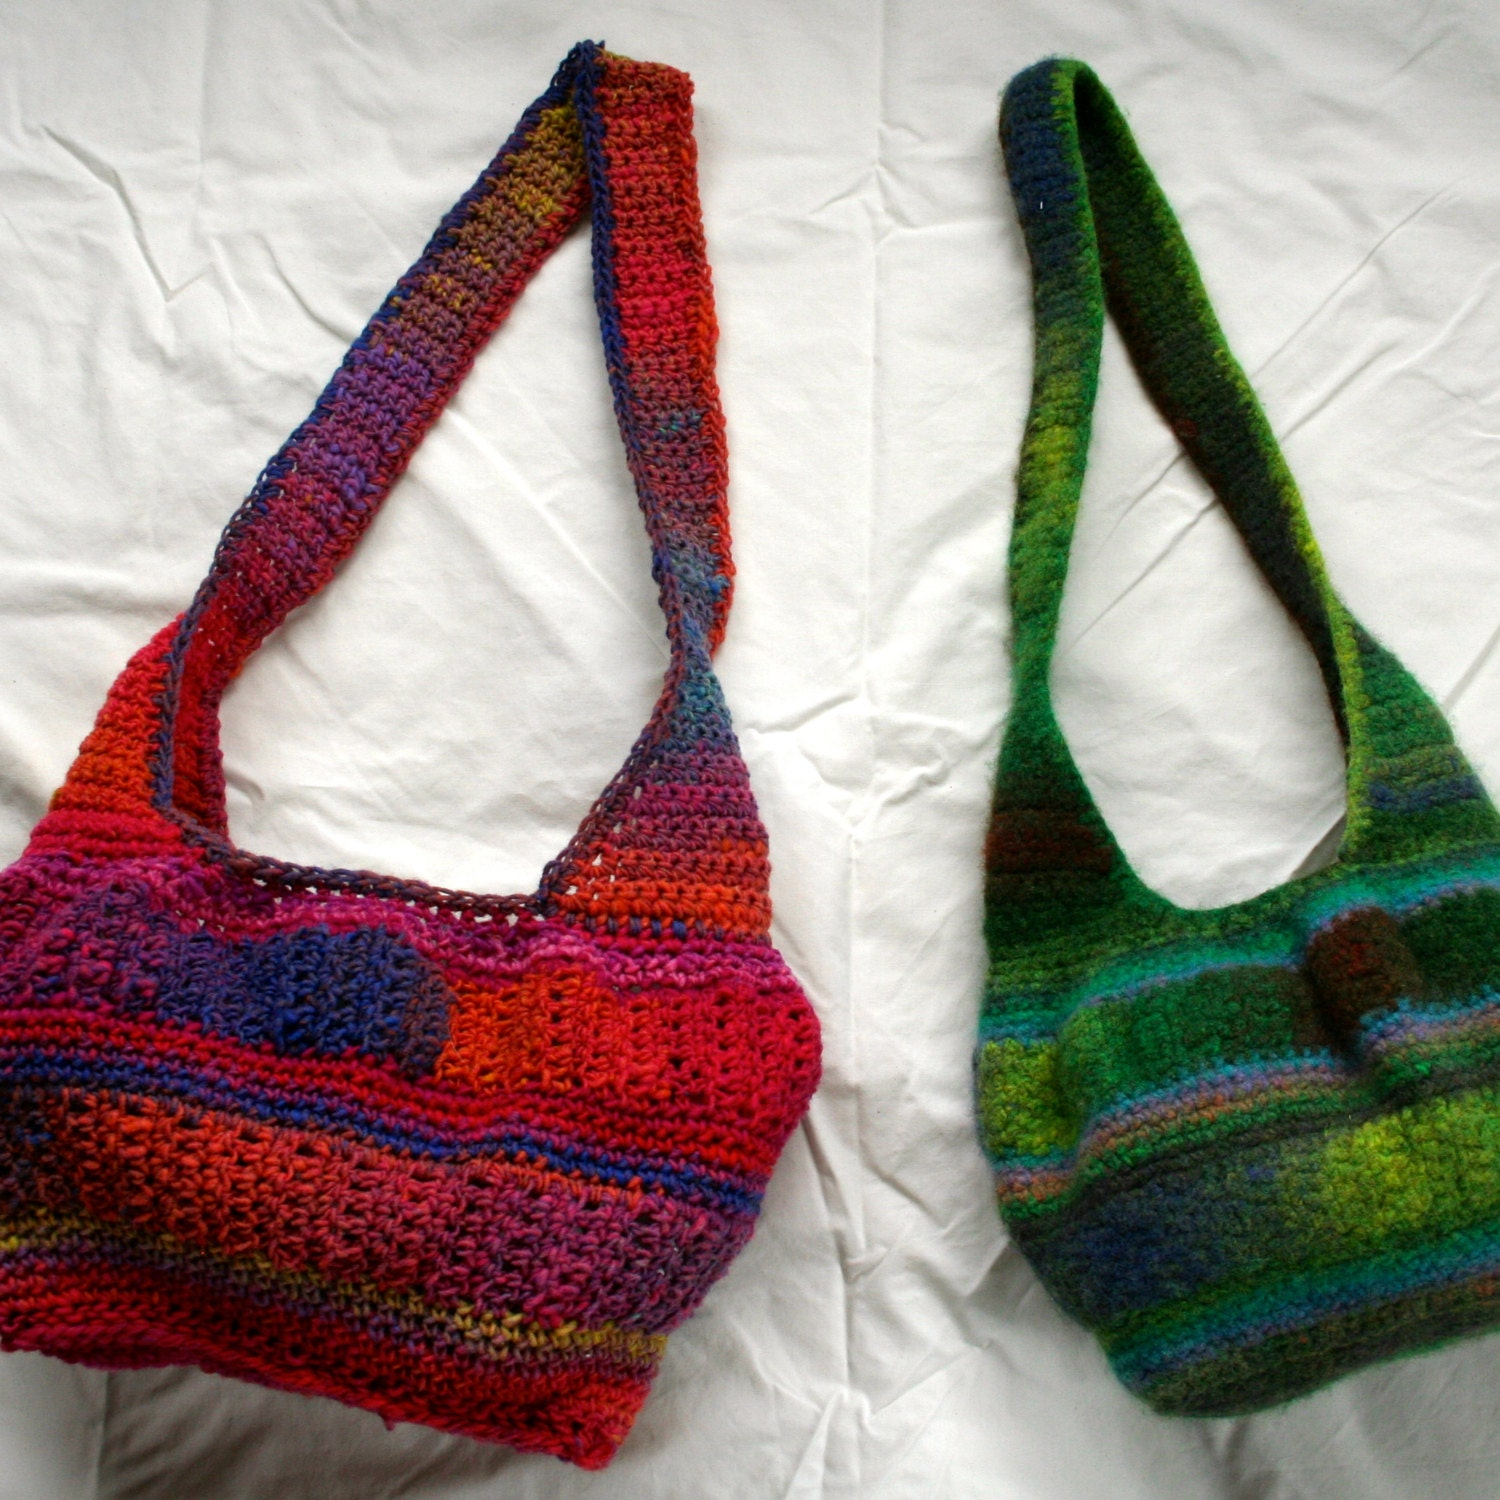 Crochet Felted Tote Bag Pattern : Crochet Pattern Noro Kureyon Felted Hobo Bag